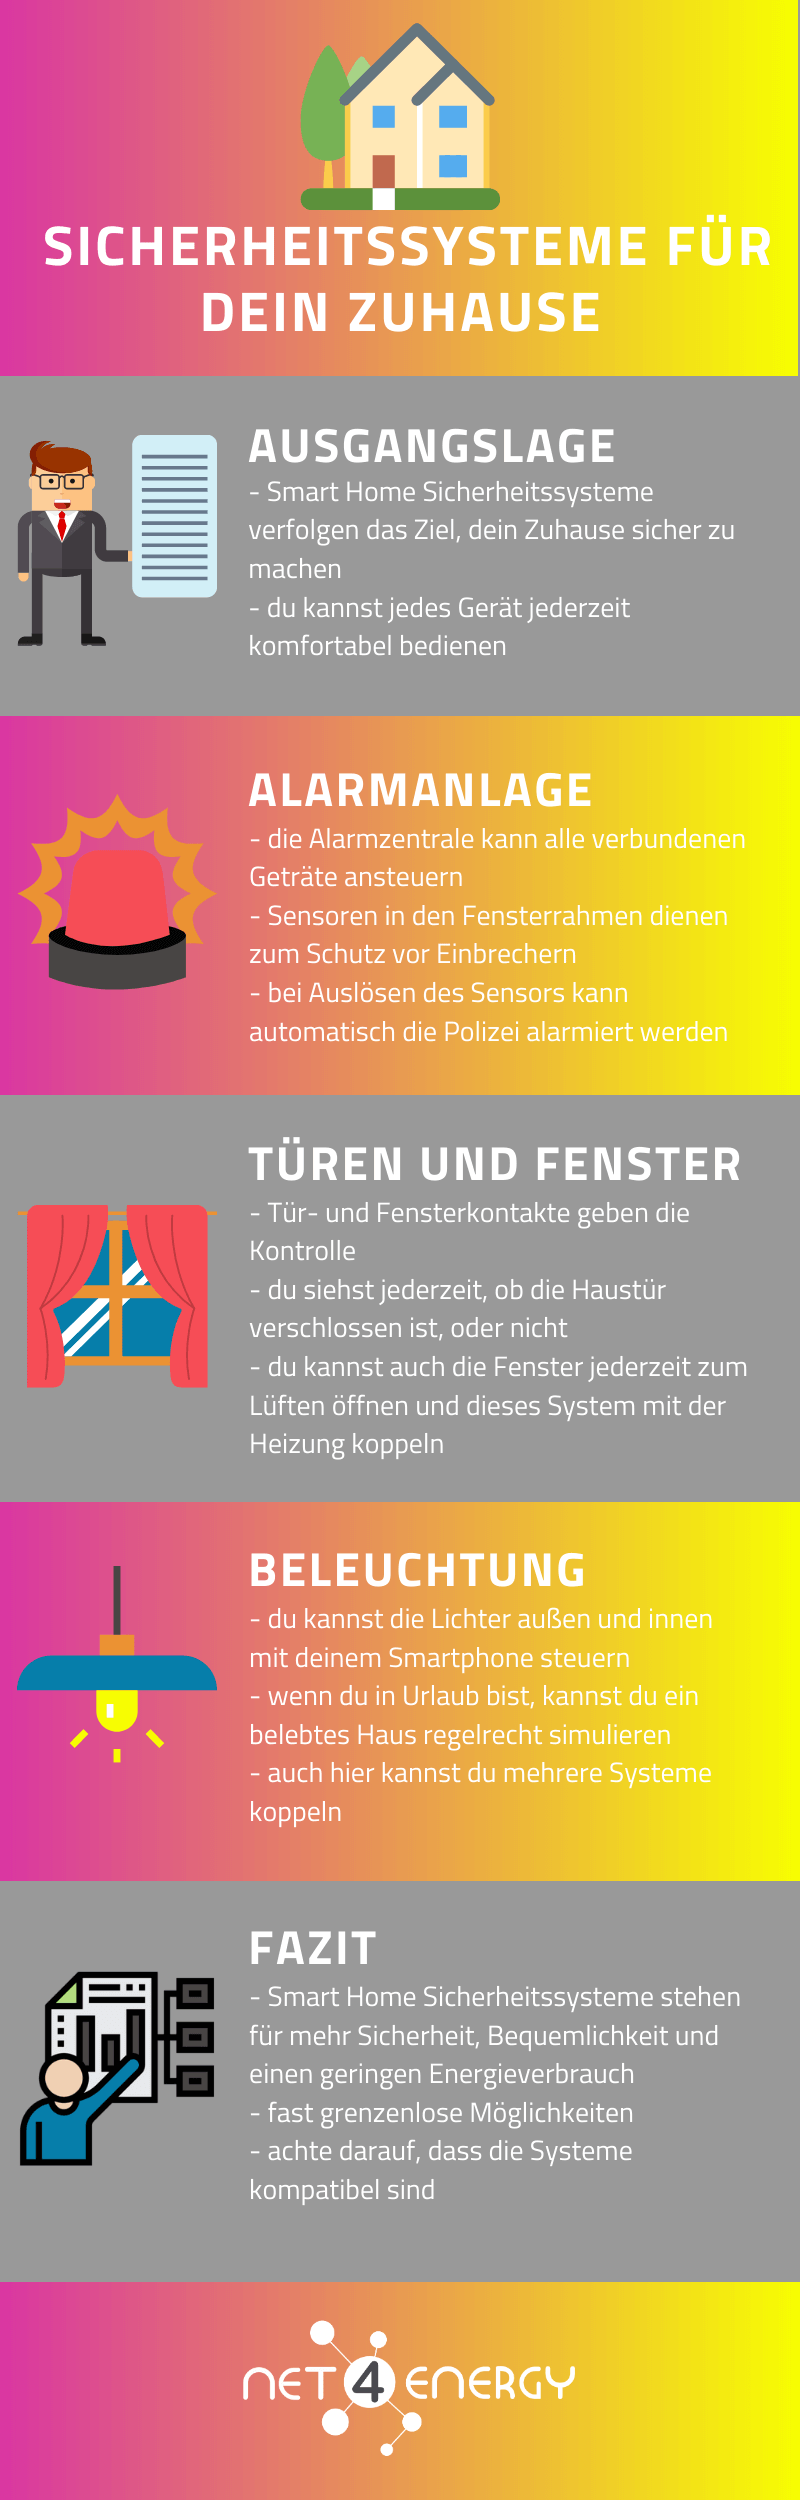 smart-home-sicherheitssysteme-infografik-net4energy